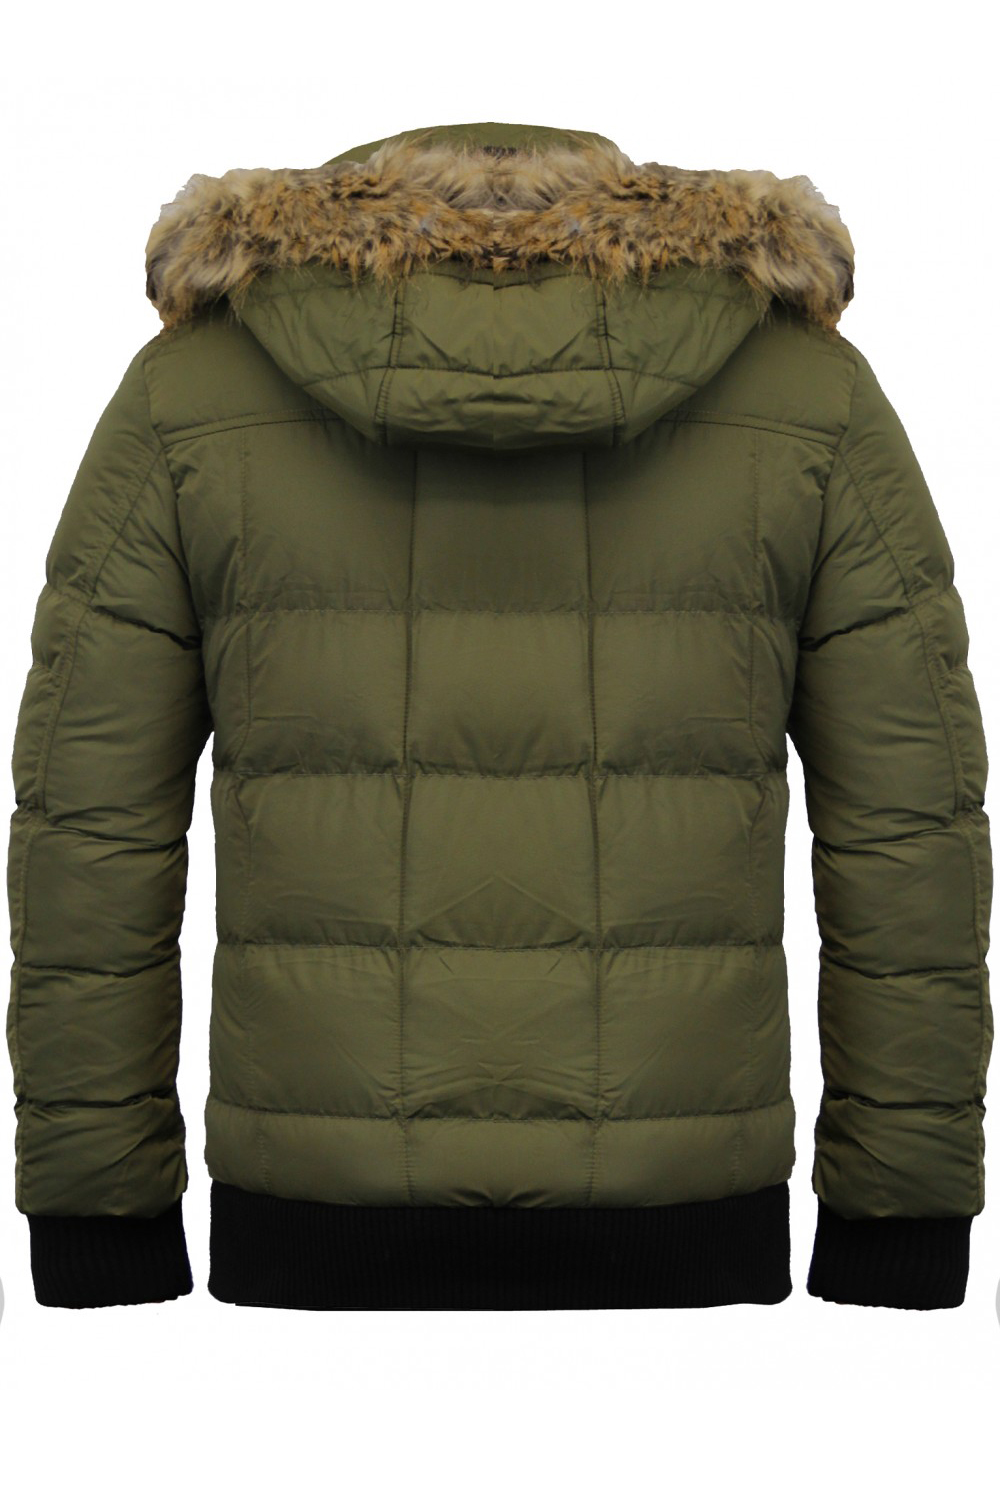 Shop the Latest Collection of Parka Jackets & Coats for Men Online at specialtysports.ga FREE SHIPPING AVAILABLE! Macy's Presents: The Edit- A curated mix of fashion and inspiration Check It Out. Free Shipping with $99 purchase + Free Store Pickup. Contiguous US. Sean John Men's Hooded Parka with Faux-Fur Trim.